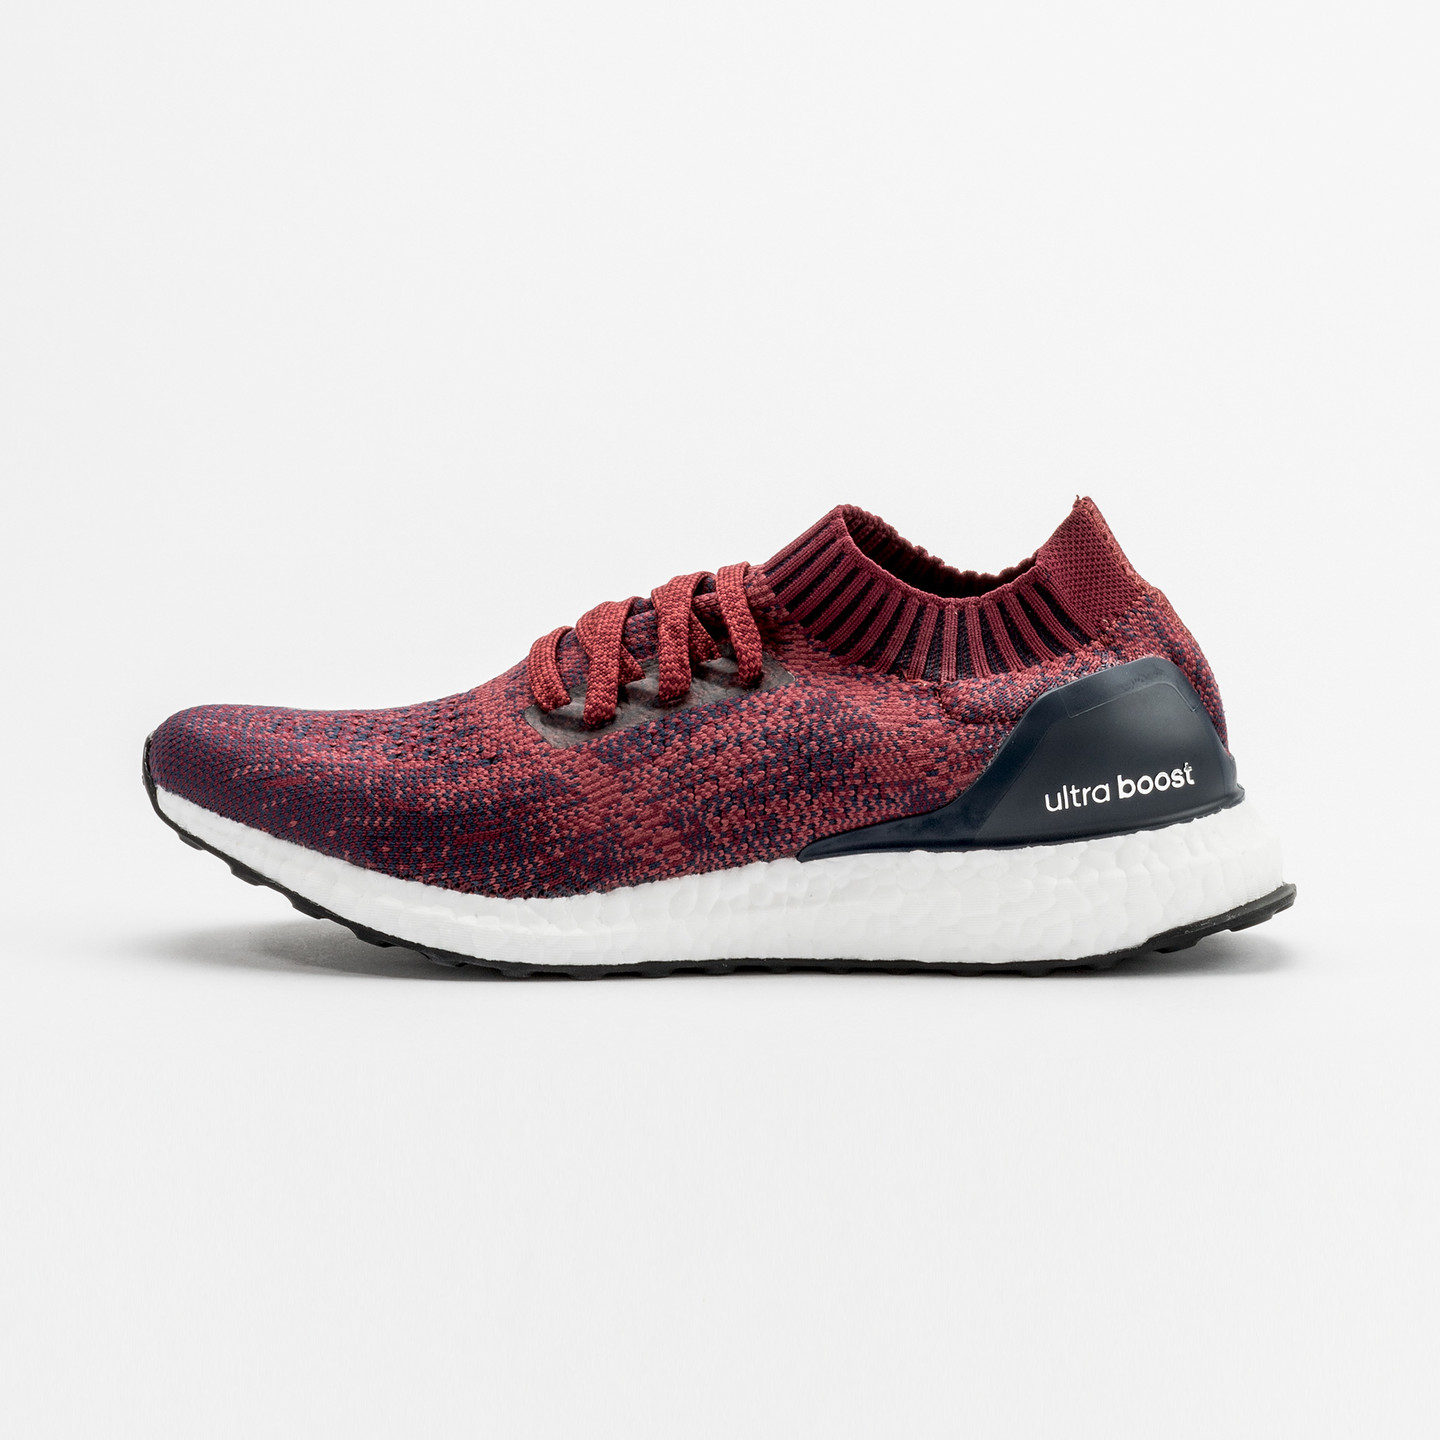 Adidas Ultra Boost Uncaged 'Burgundy' Mystery Red / Coll. Burgundy / Coll. Navy BA9617-45.33